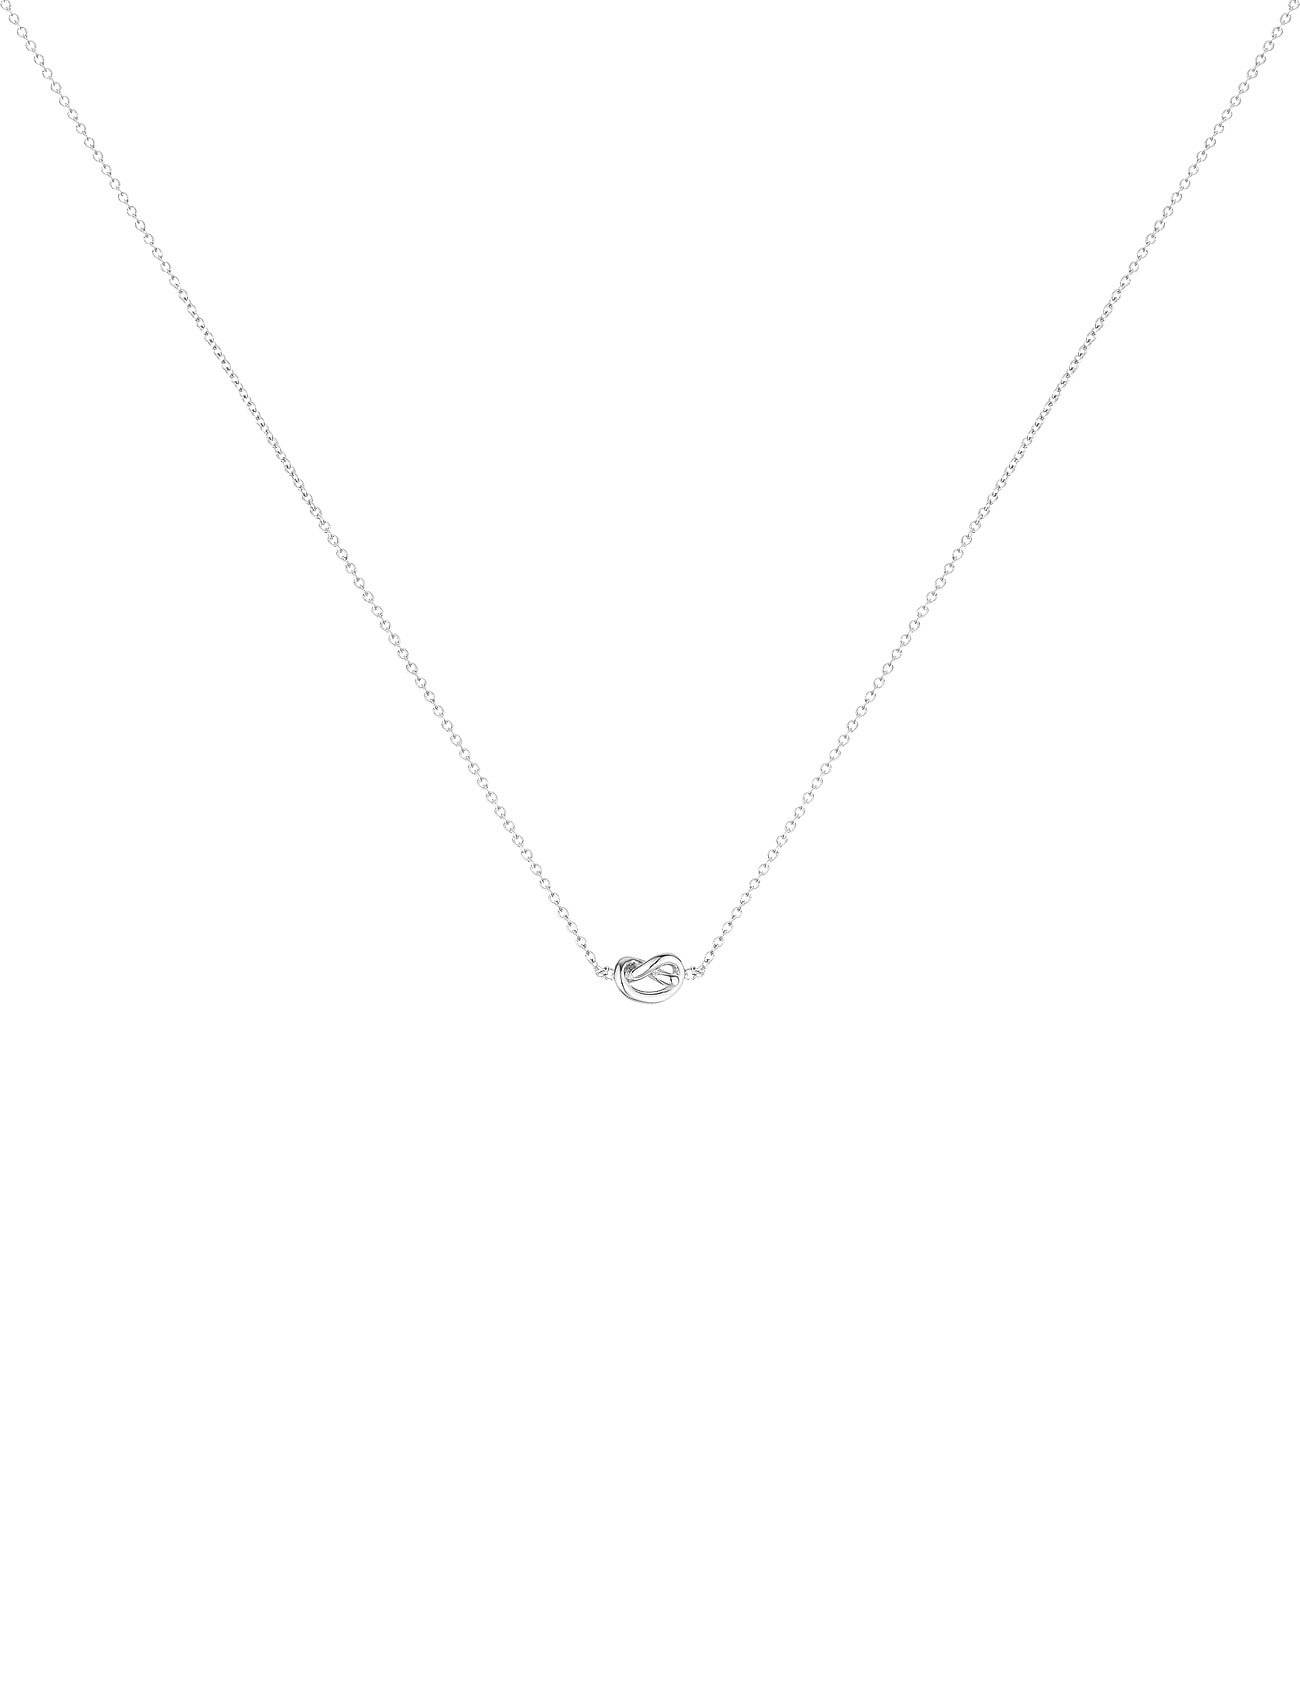 SOPHIE by SOPHIE Knot Necklace Accessories Jewellery Necklaces Dainty Necklaces Hopea SOPHIE By SOPHIE